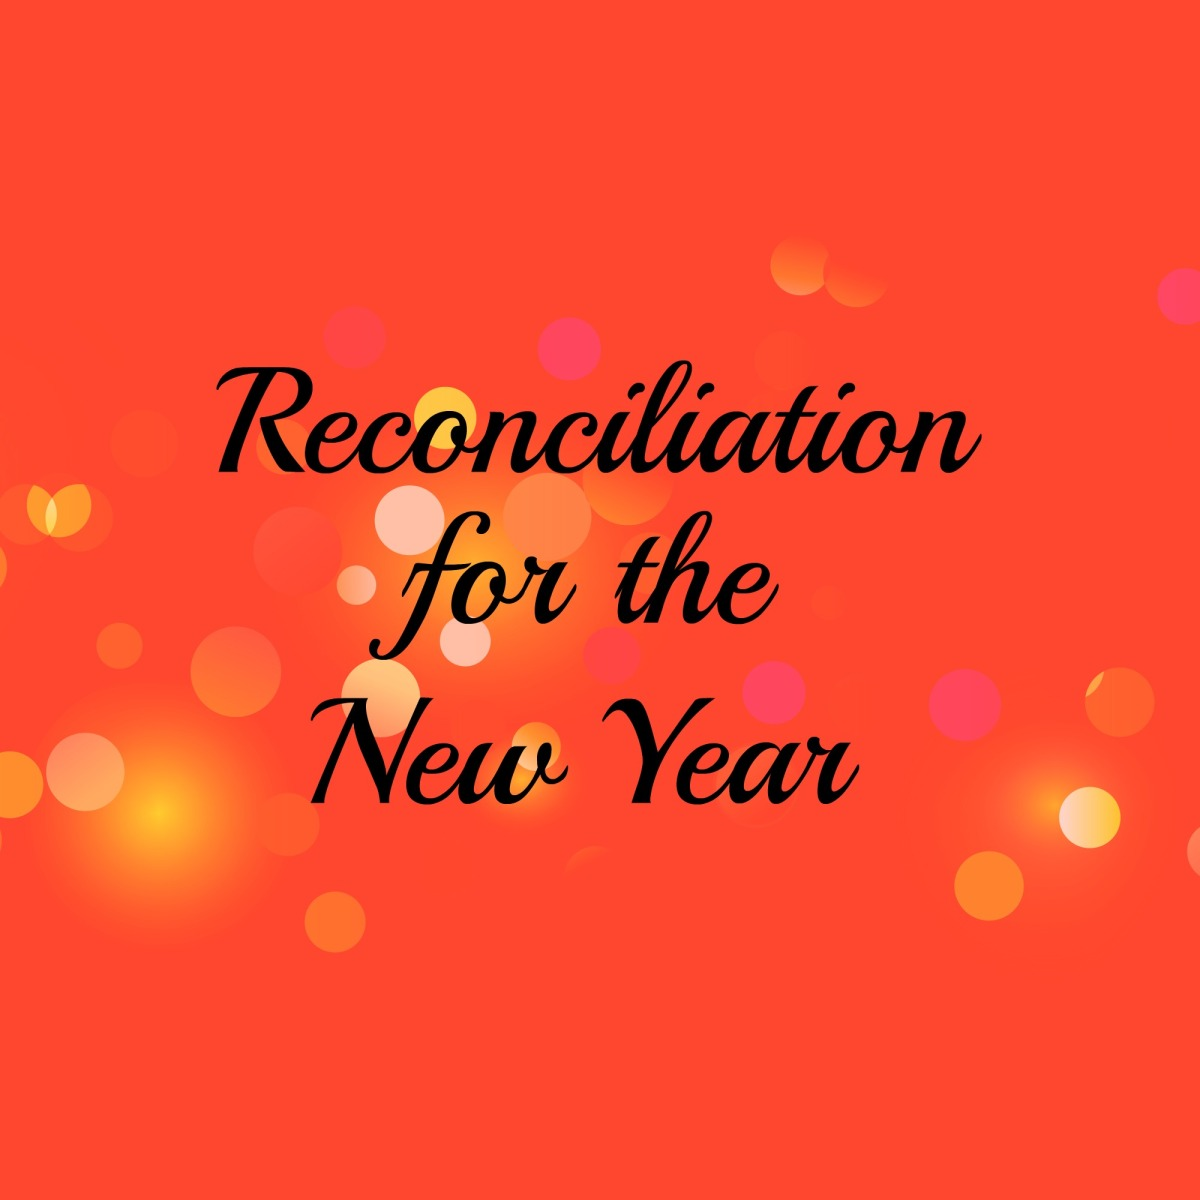 Reconciliation for the NewYear